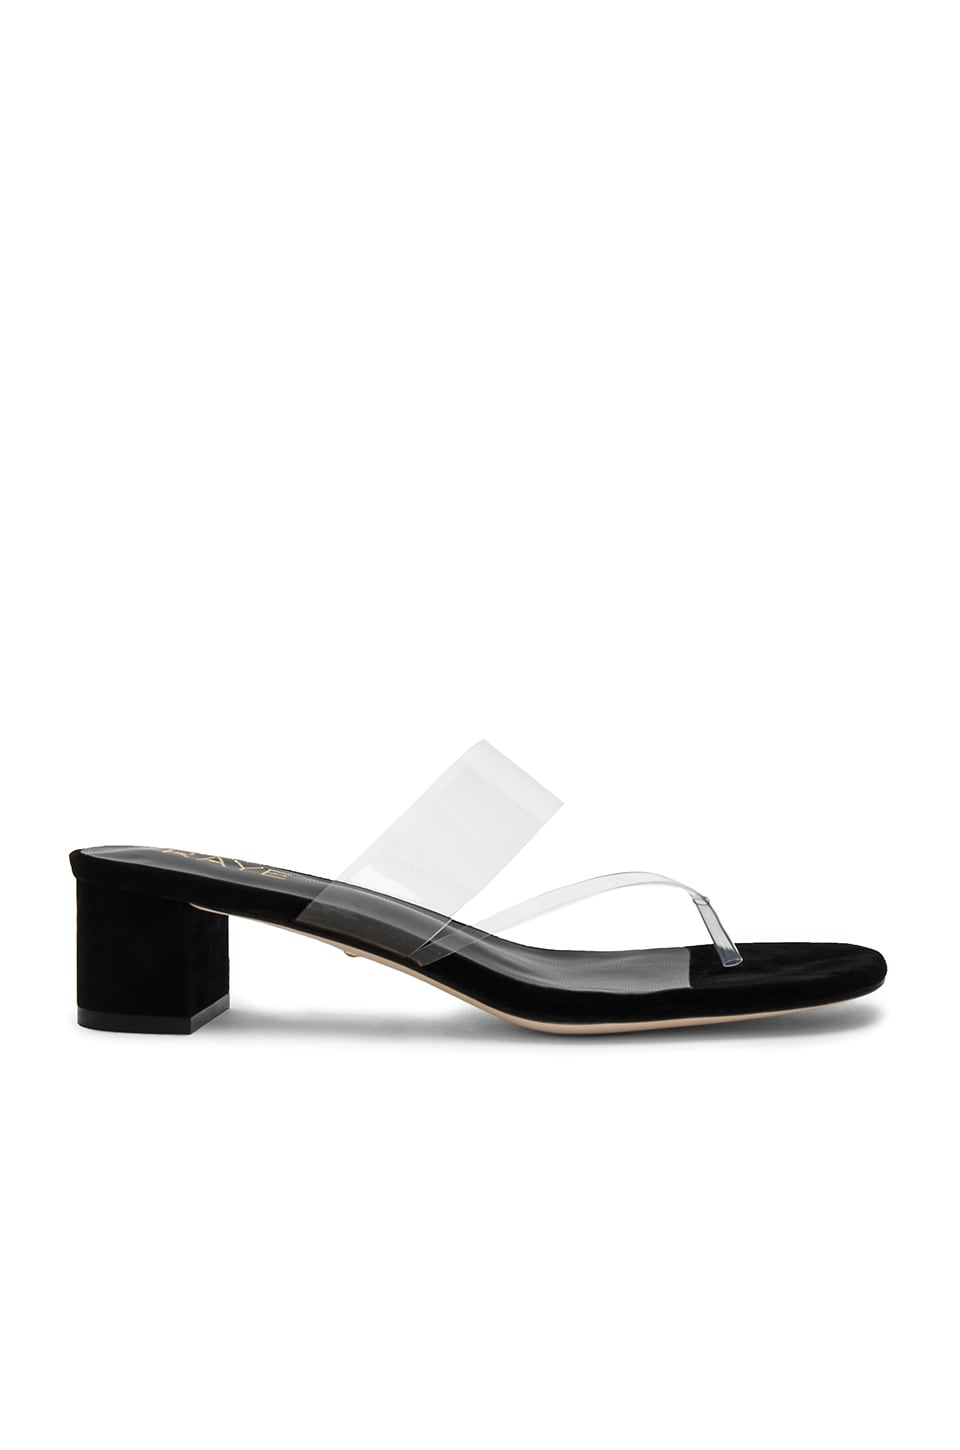 RAYE Nova Sandal in Black